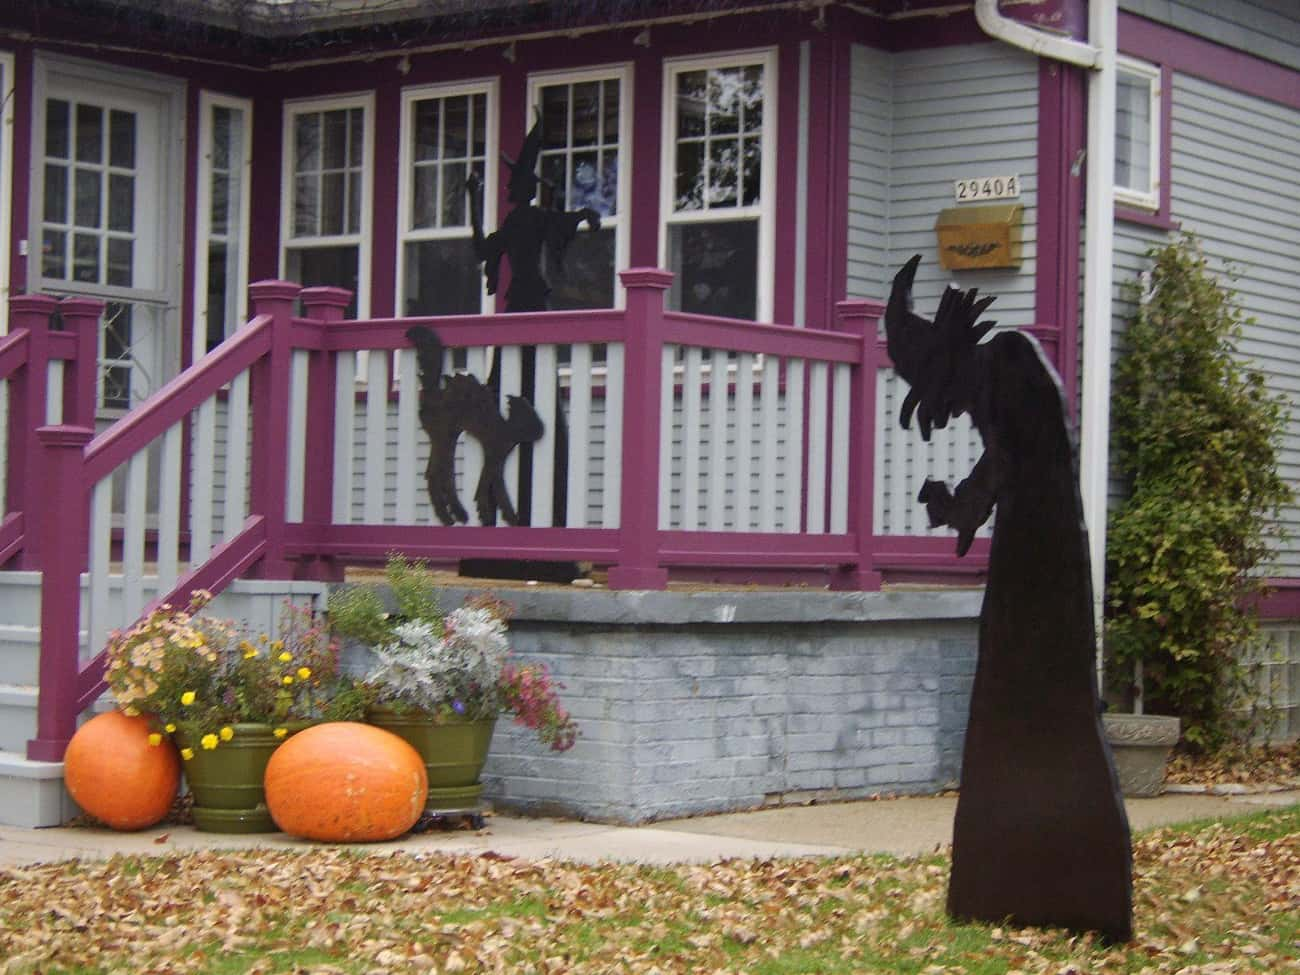 Dead Body Prop on Porch is Act is listed (or ranked) 4 on the list Times Dead Bodies Were Actually Used as Halloween Decorations